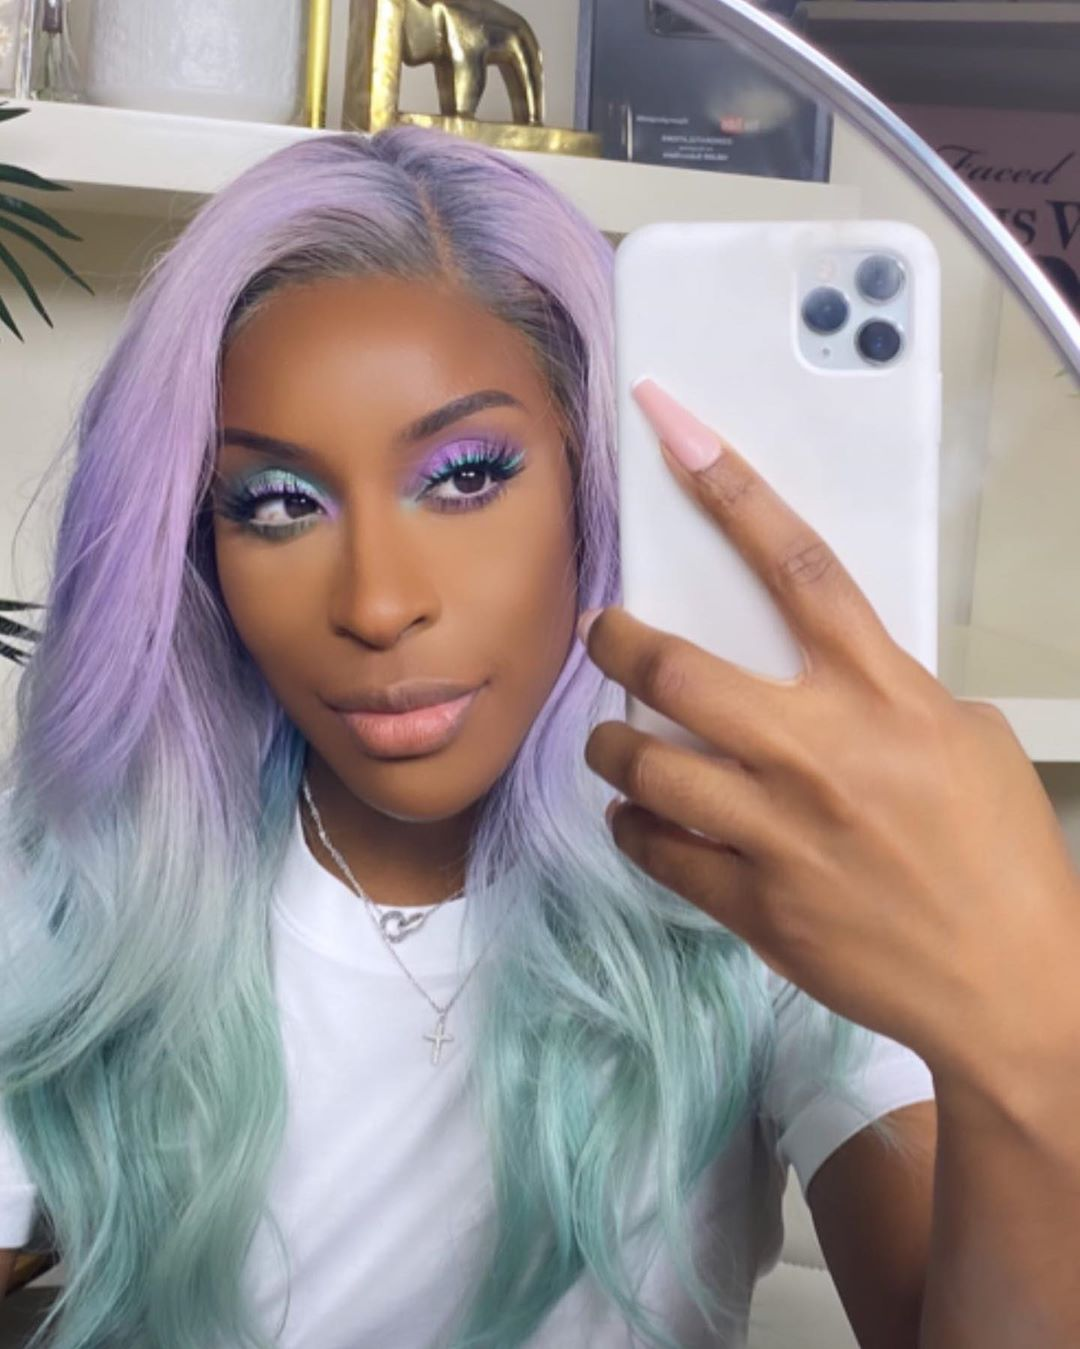 Jackie Aina's New Routine Proves Pastel Makeup Looks BOMB On Dark Skin | BN Style